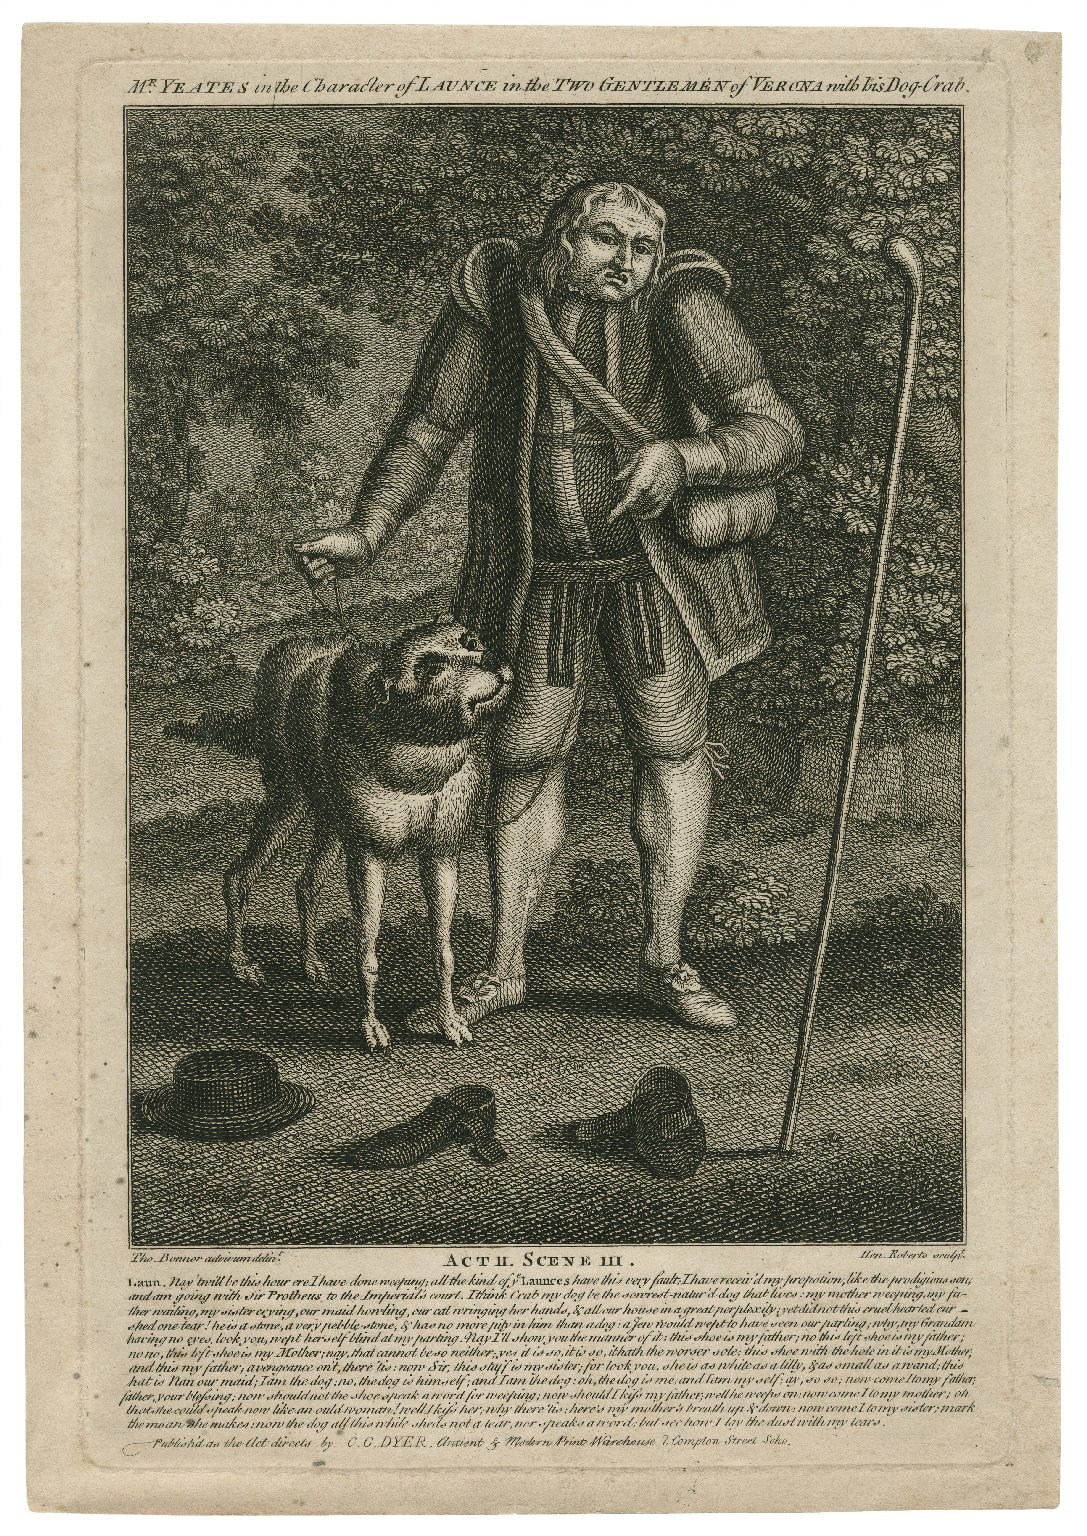 Mr. Yeates in the character of Launce in [Shakespeare's] the Two gentlemen of Verona ... Laun. Nay 'twill be this hour ... [graphic] / Tho. Bonner ad vivum, delint. ; Hen. Roberts, sculpt.